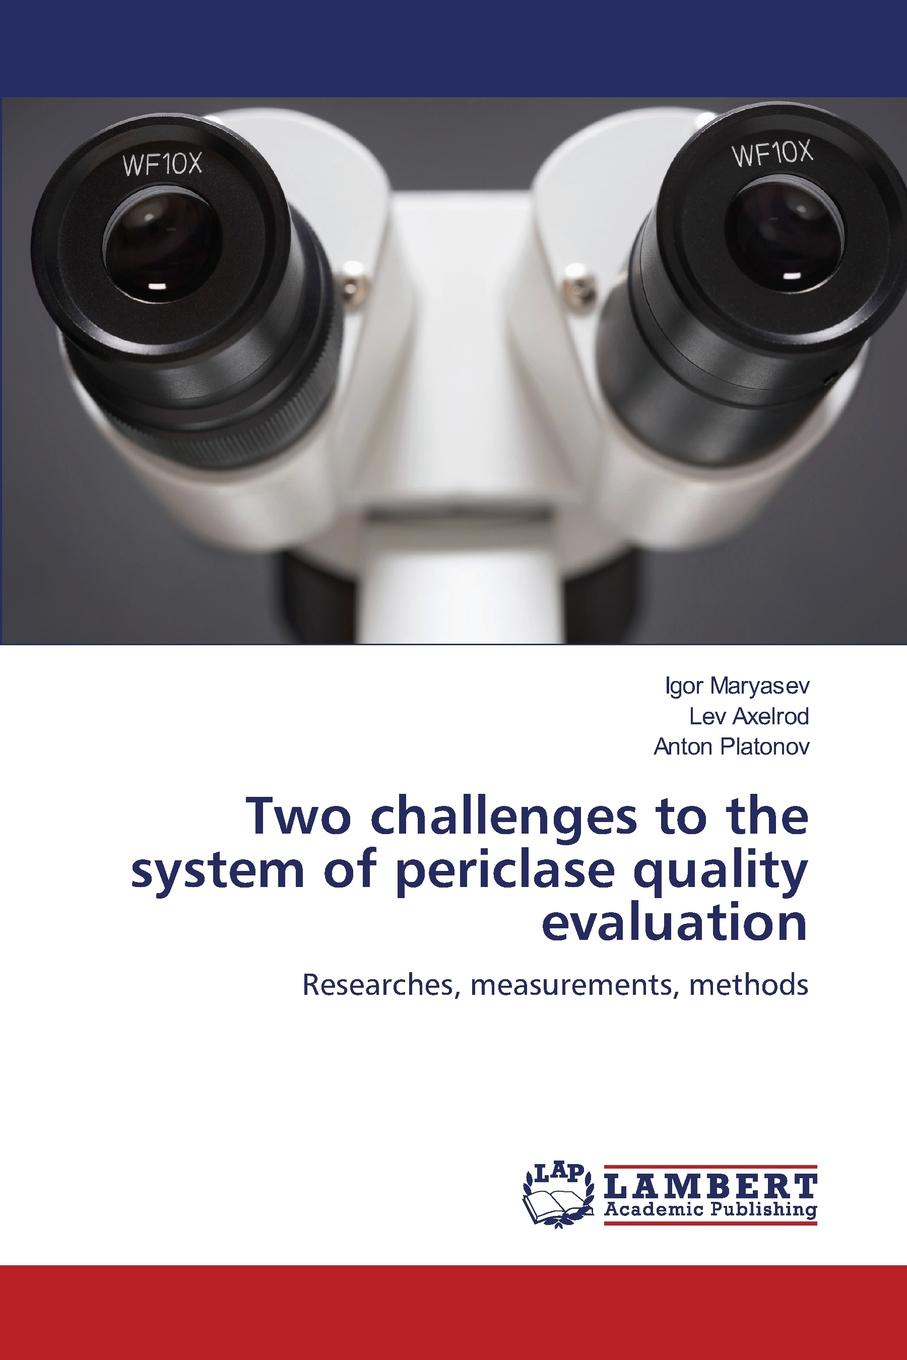 Maryasev Igor, Аxelrod Lev, Platonov Anton Two challenges to the system of periclase quality evaluation музыка the crystal method